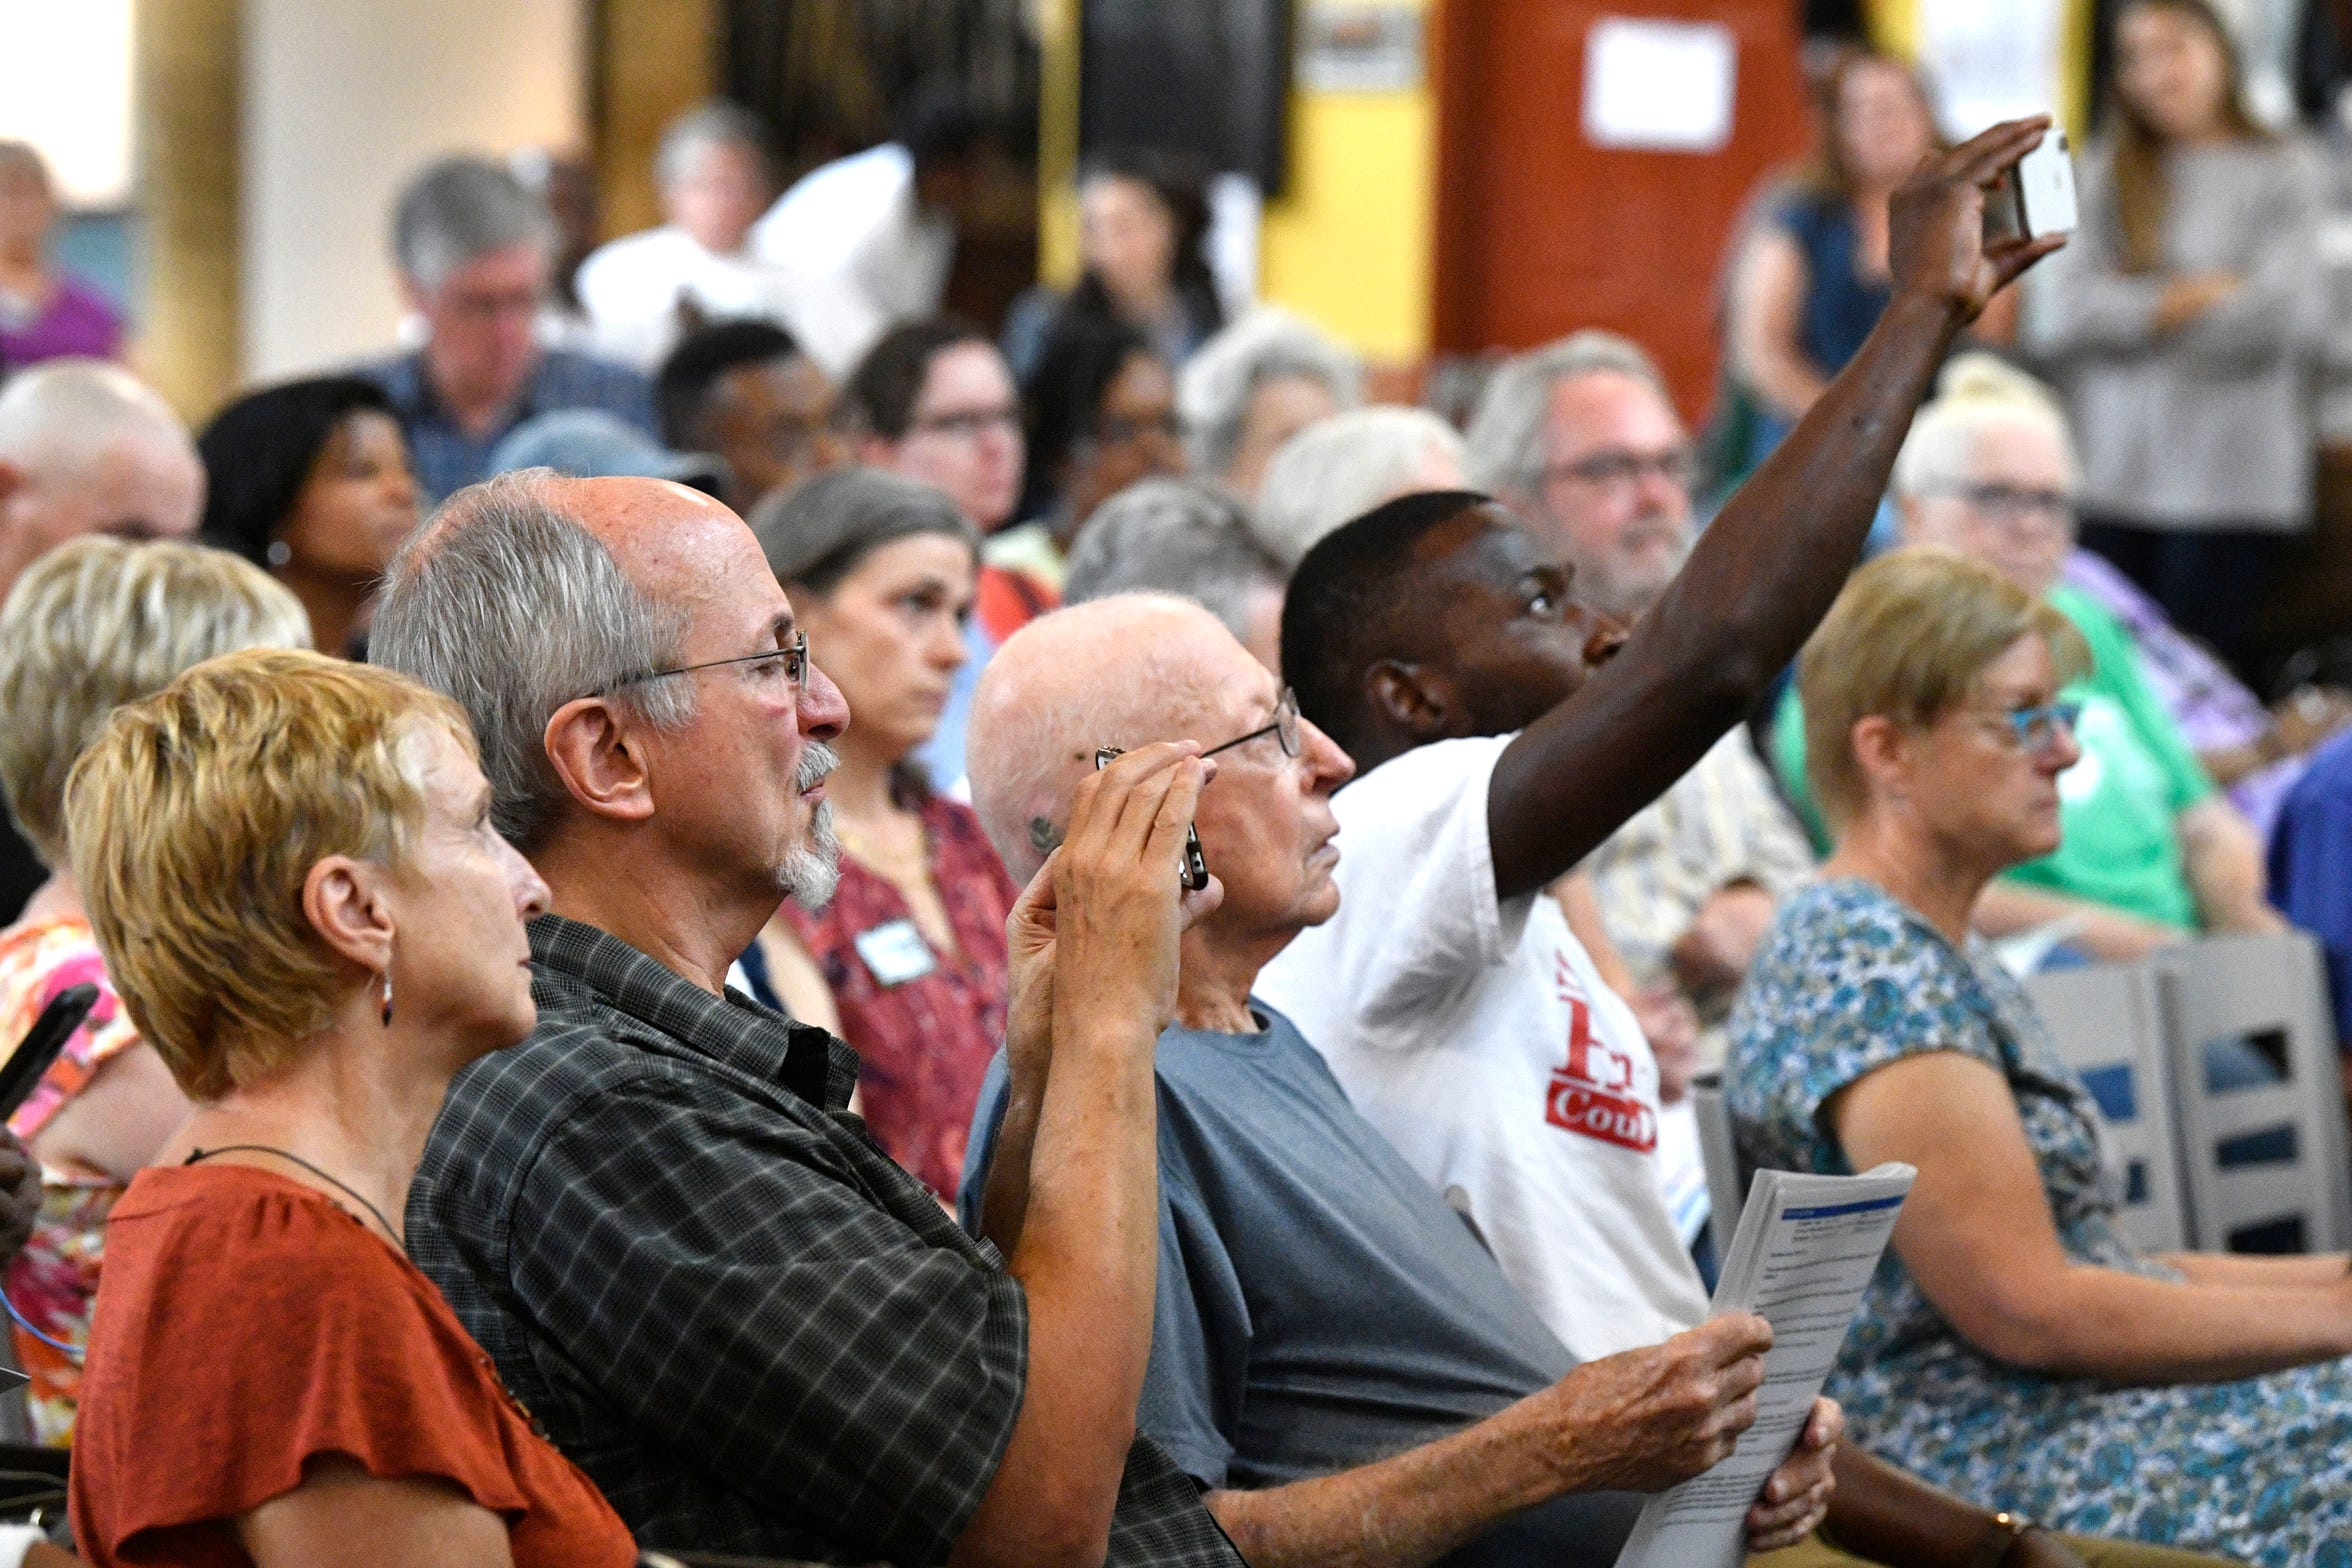 Audience members take photos and videos as the candidates speak at a forum for the 8 at-large Metro Nashville runoff candidates at the Nashville Farmers Market. Sunday, Aug. 25, 2019, in Nashville, Tenn.